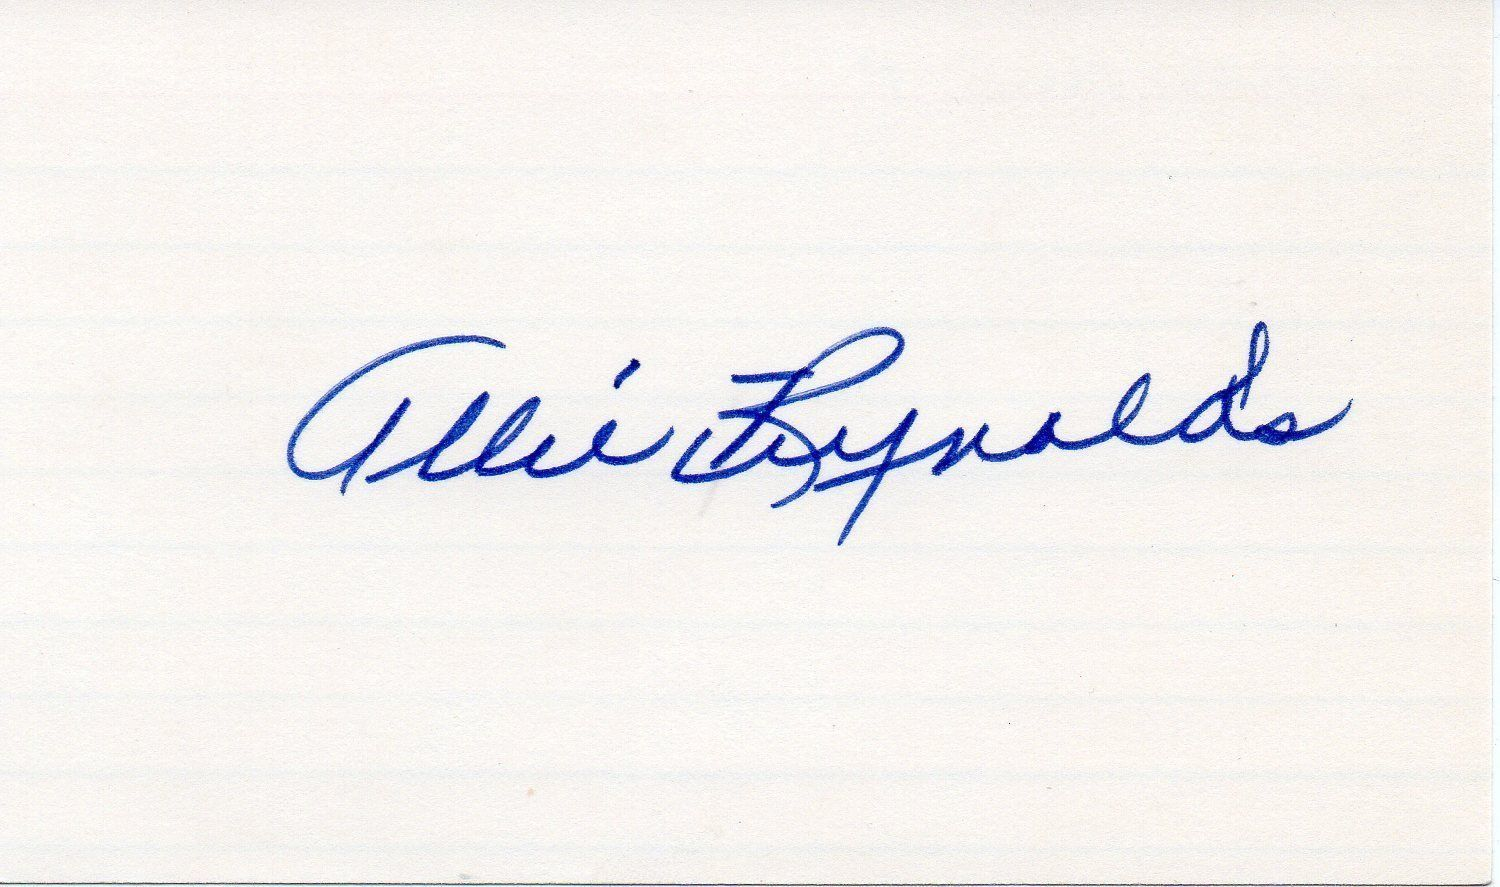 ALLIE REYNOLDS Signed index card, nice autograph, New York Yankees